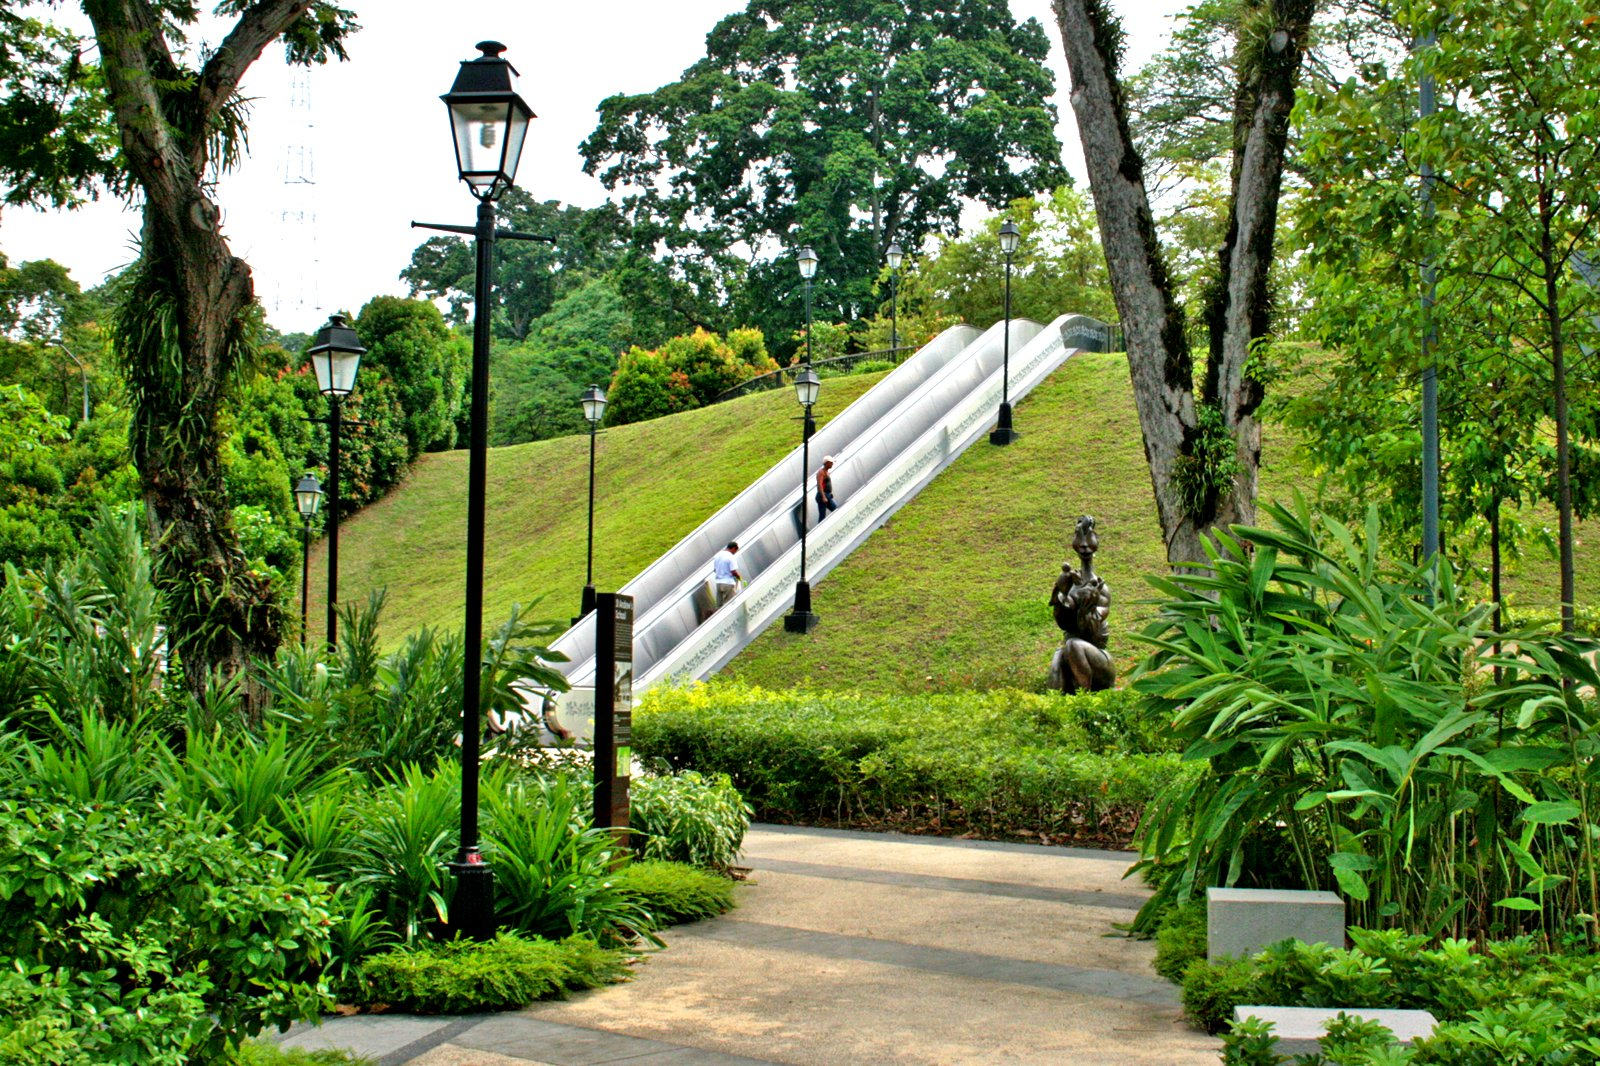 10 Best Free Things to Do in Singapore - How to Experience Singapore